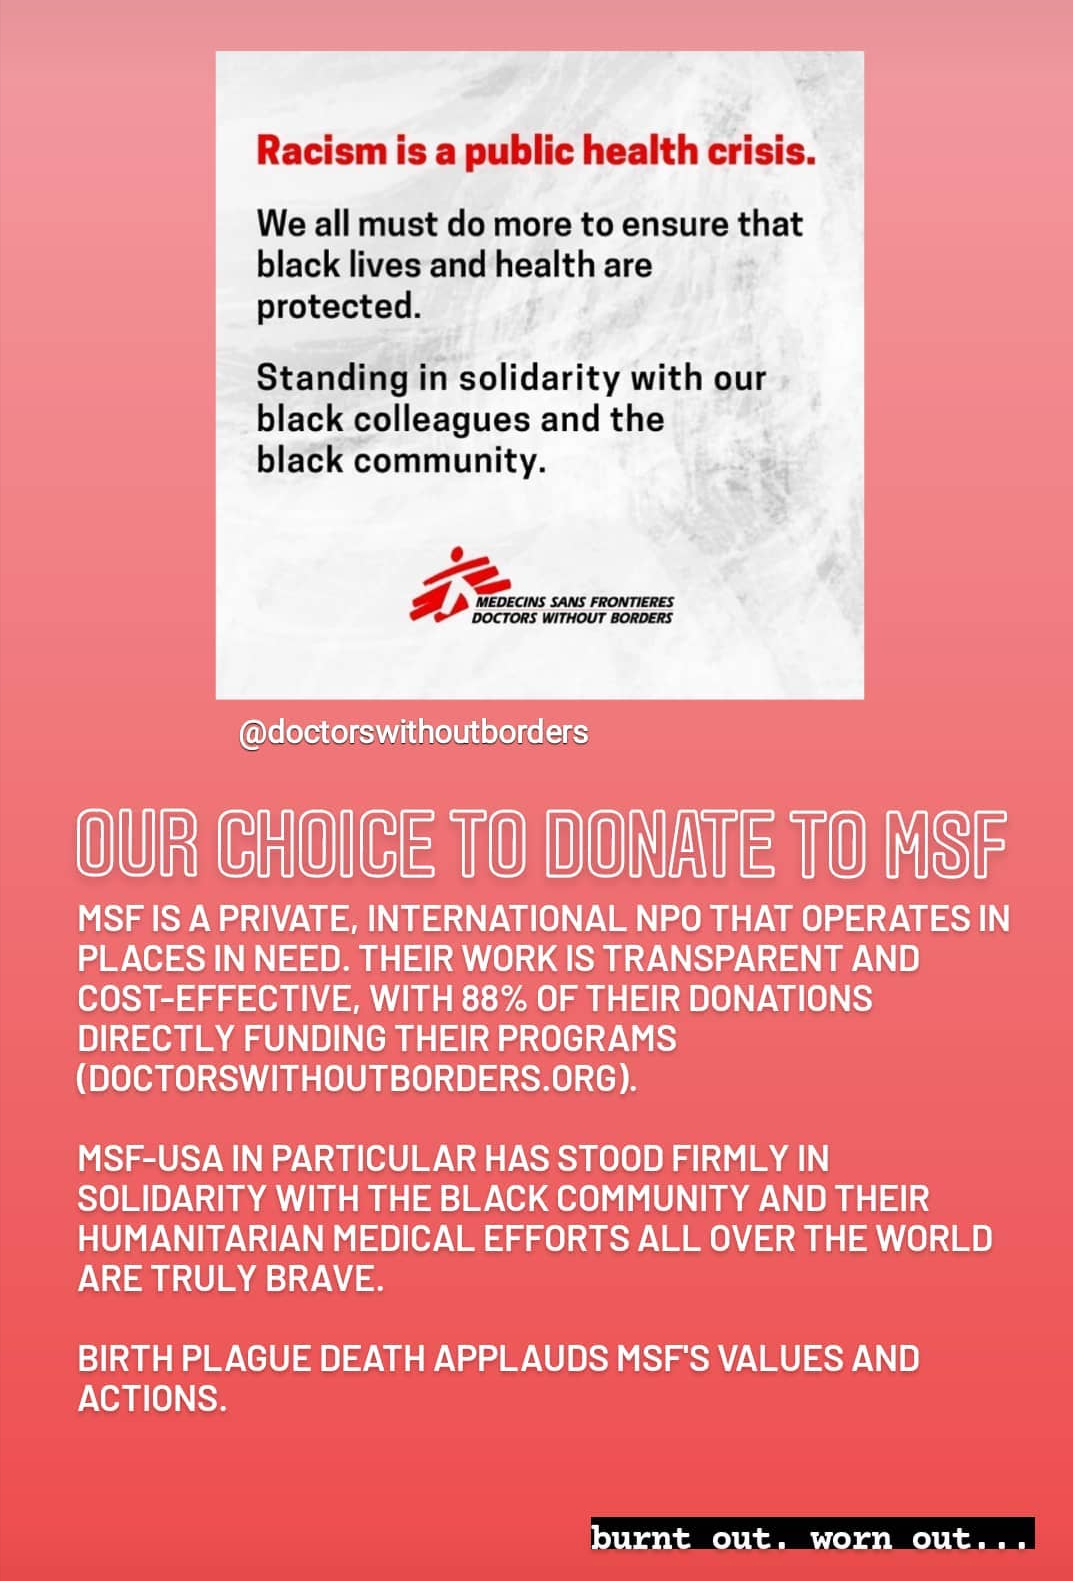 our choice to donate to MSF